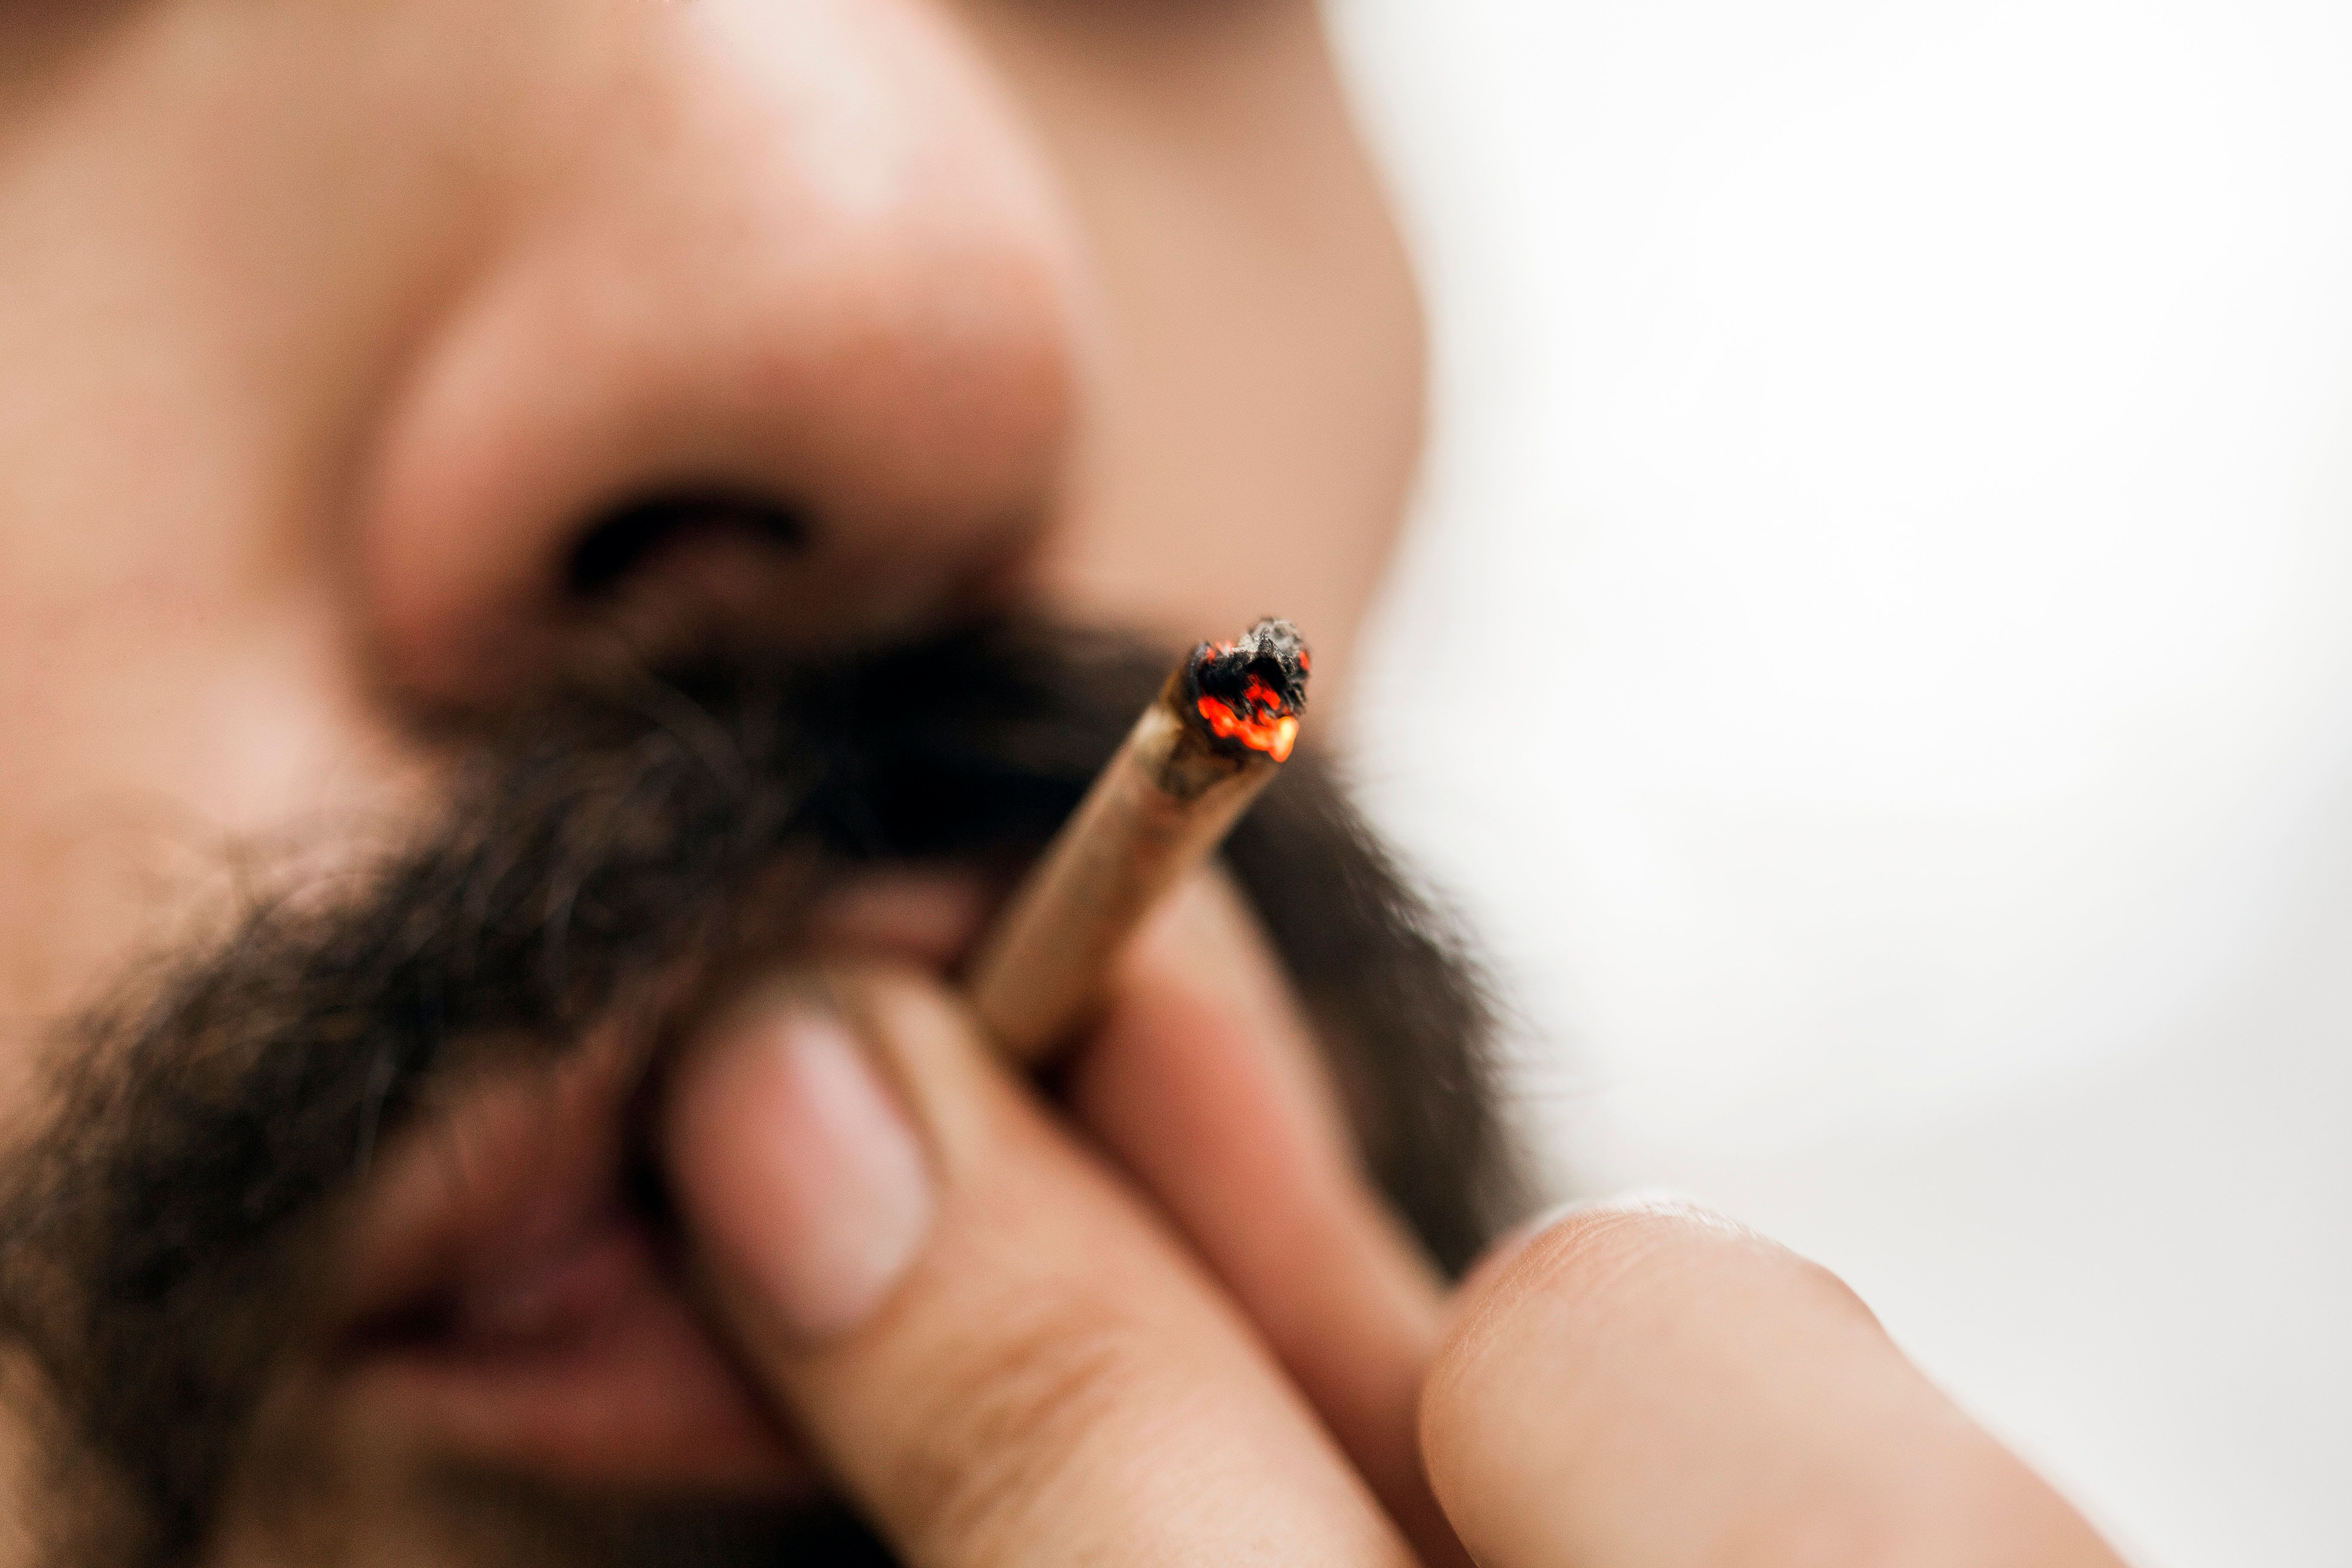 Planning To Visit Canada For Legal Weed? Don't Expect Amsterdam